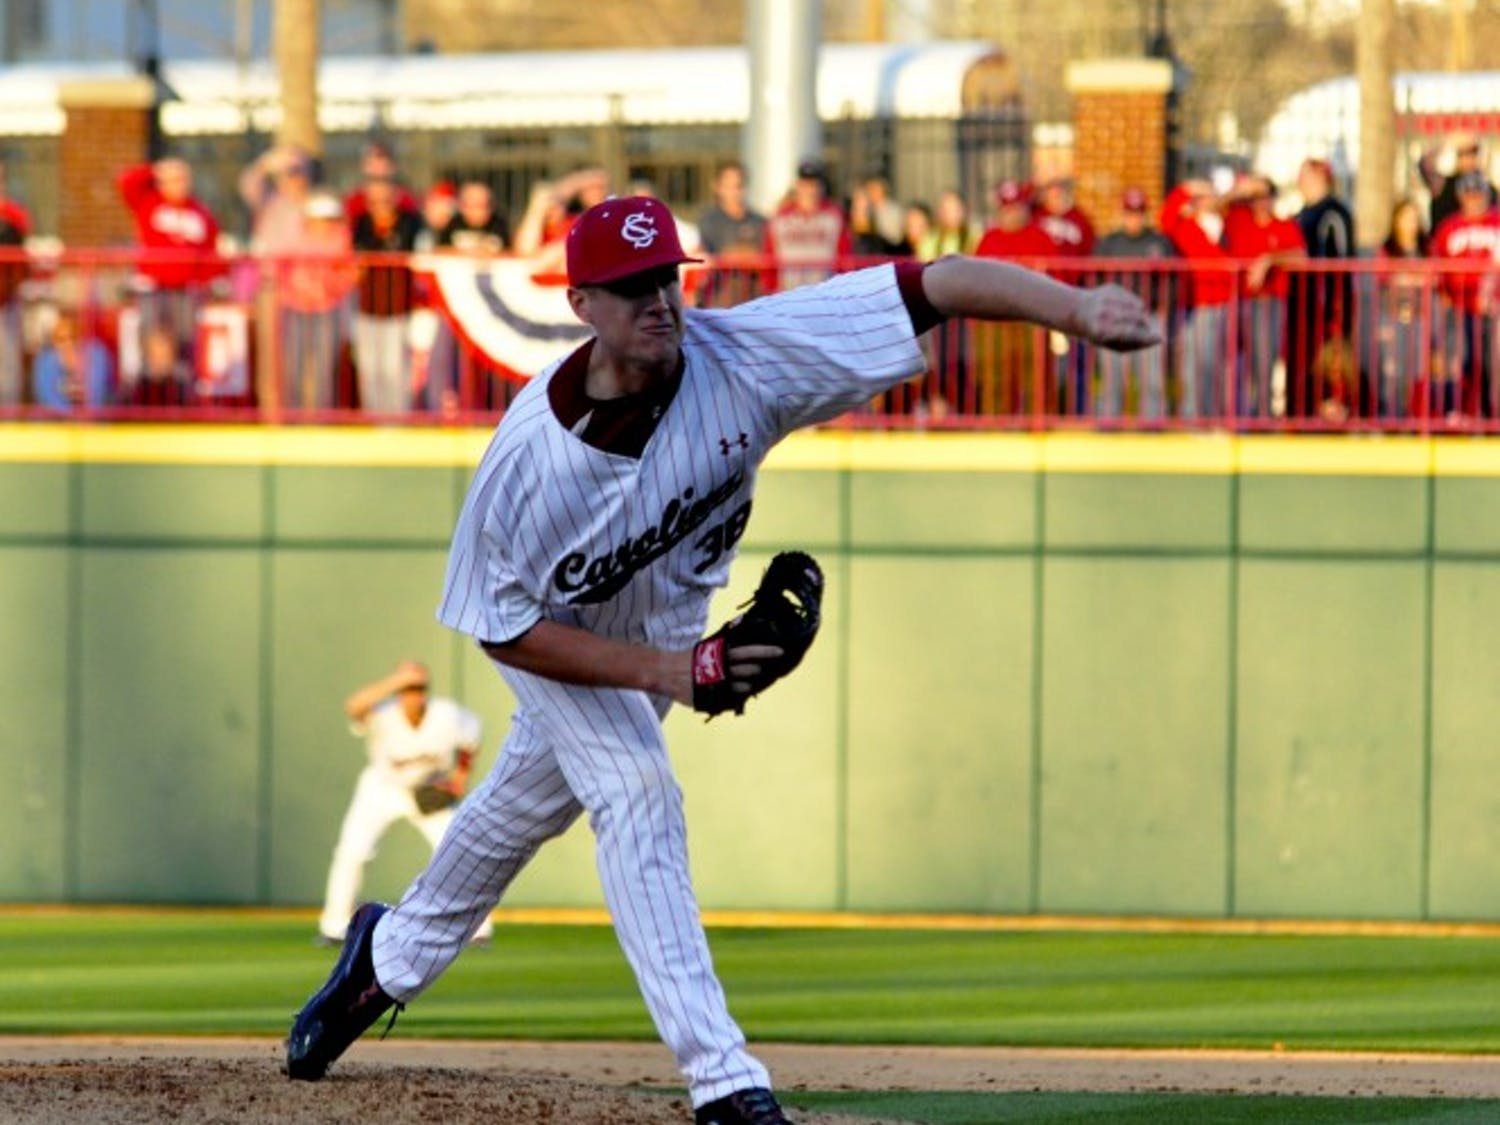 Senior closer Tyler Webb has missed time with a left elbow injury, but an MRI revealed no structural damage. Coach Chad Holbrook said he will not rush Webb back but hopes he can pitch against Kentucky this weekend.